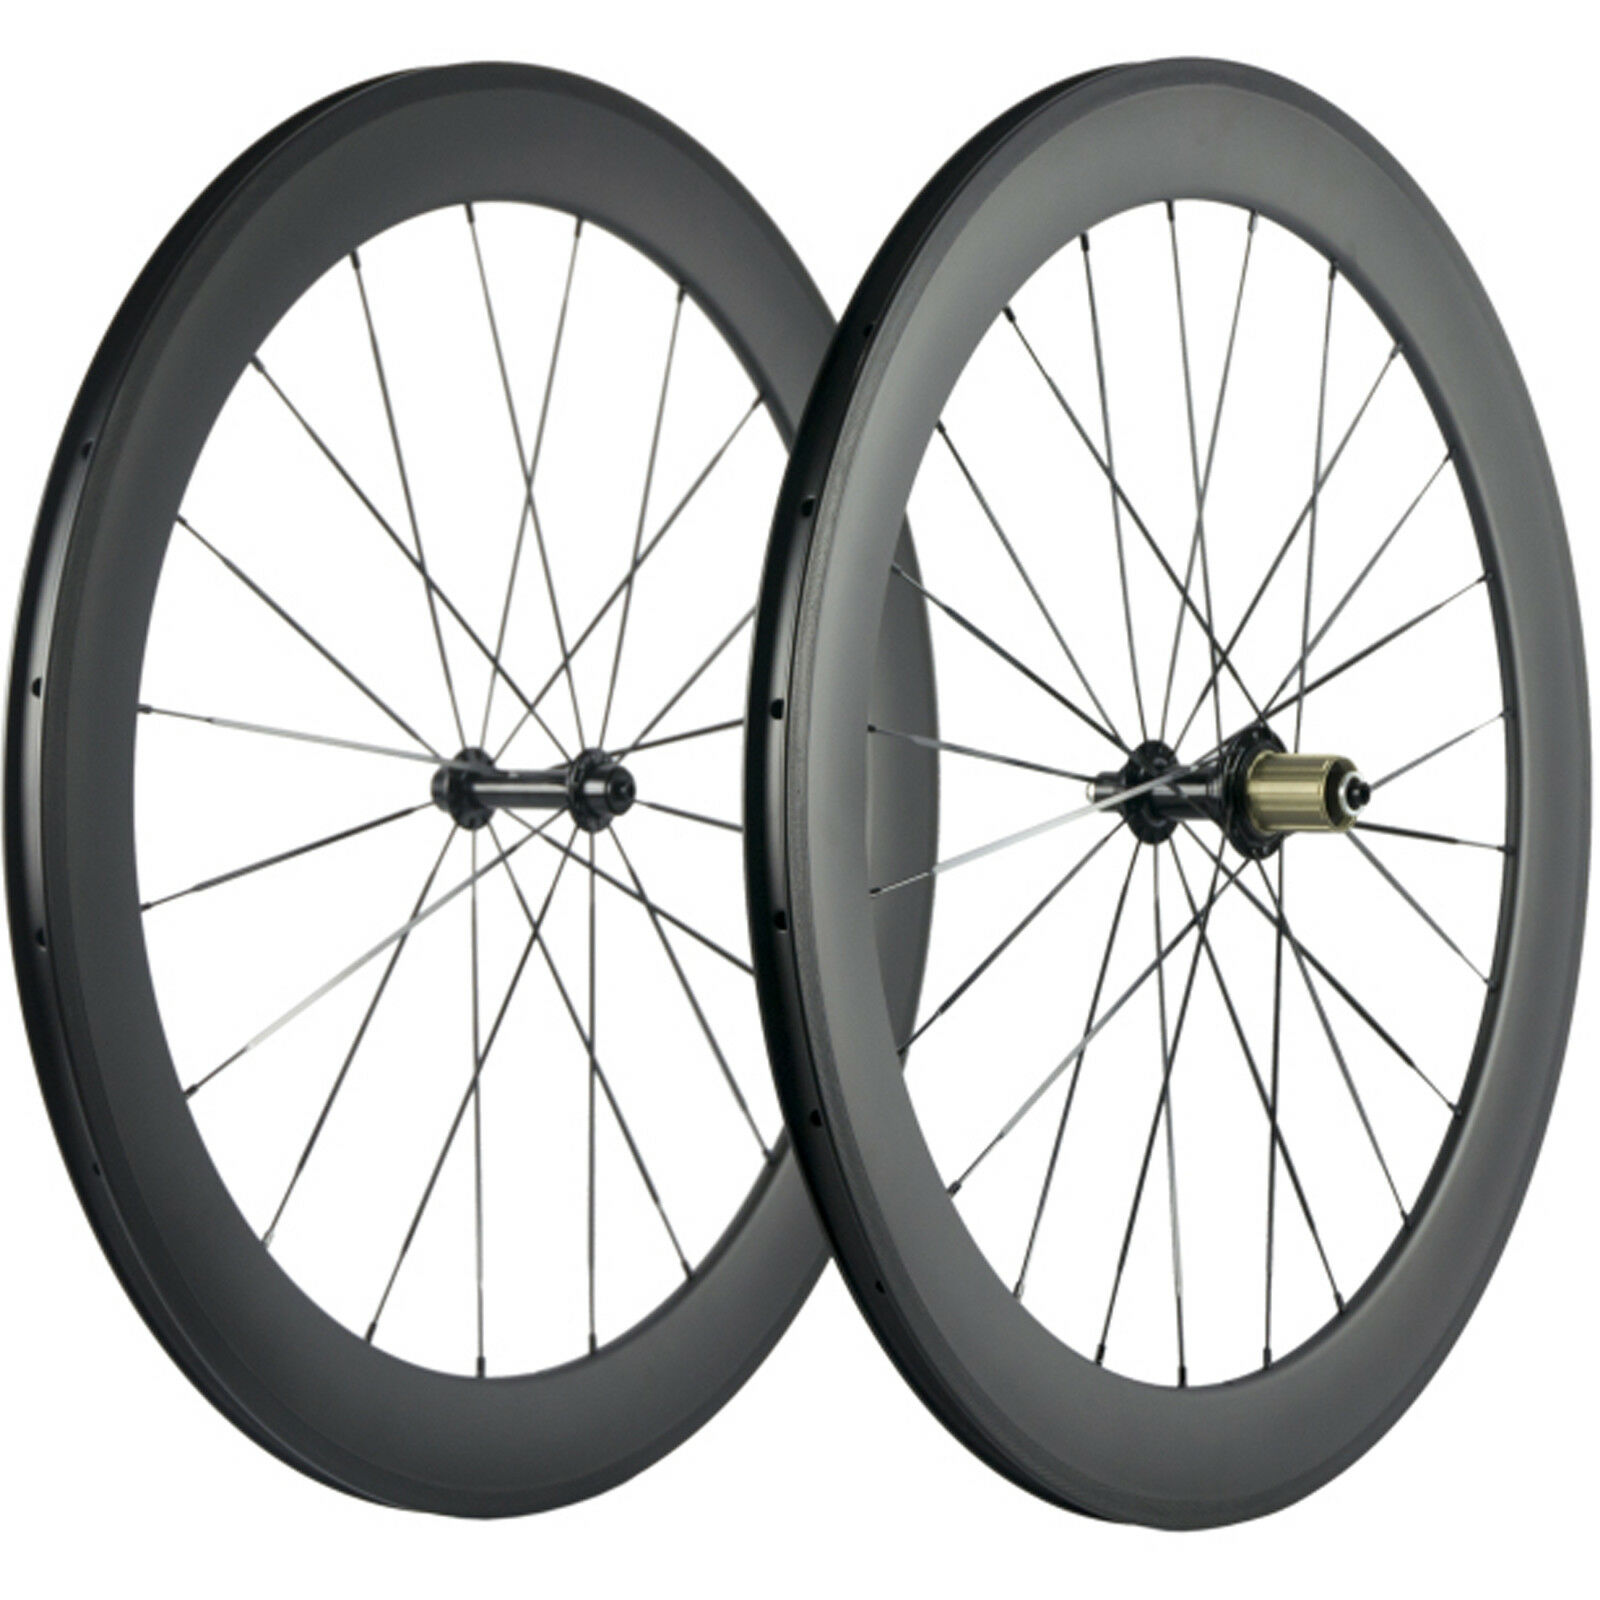 UD Matte Clincher Carbon Wheels 60mm Road Bike Carbon Wheelset R13 Carbon Wheel